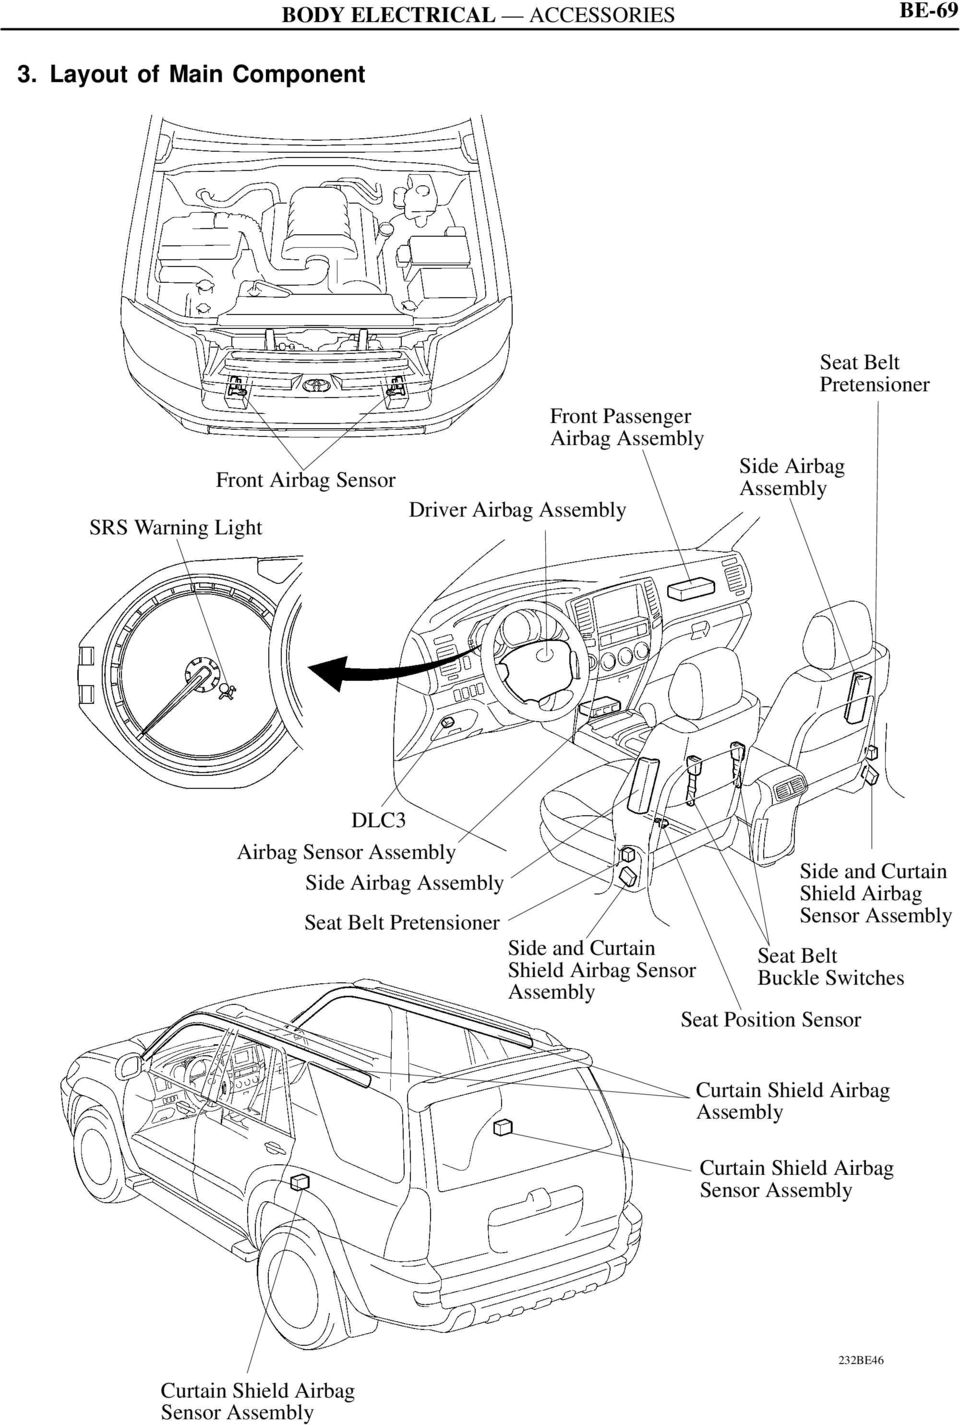 srs airbag system 1 general 2 system diagram be 67 body air ride compressor wiring front passenger airbag side airbag pretensioner dlc3 side airbag